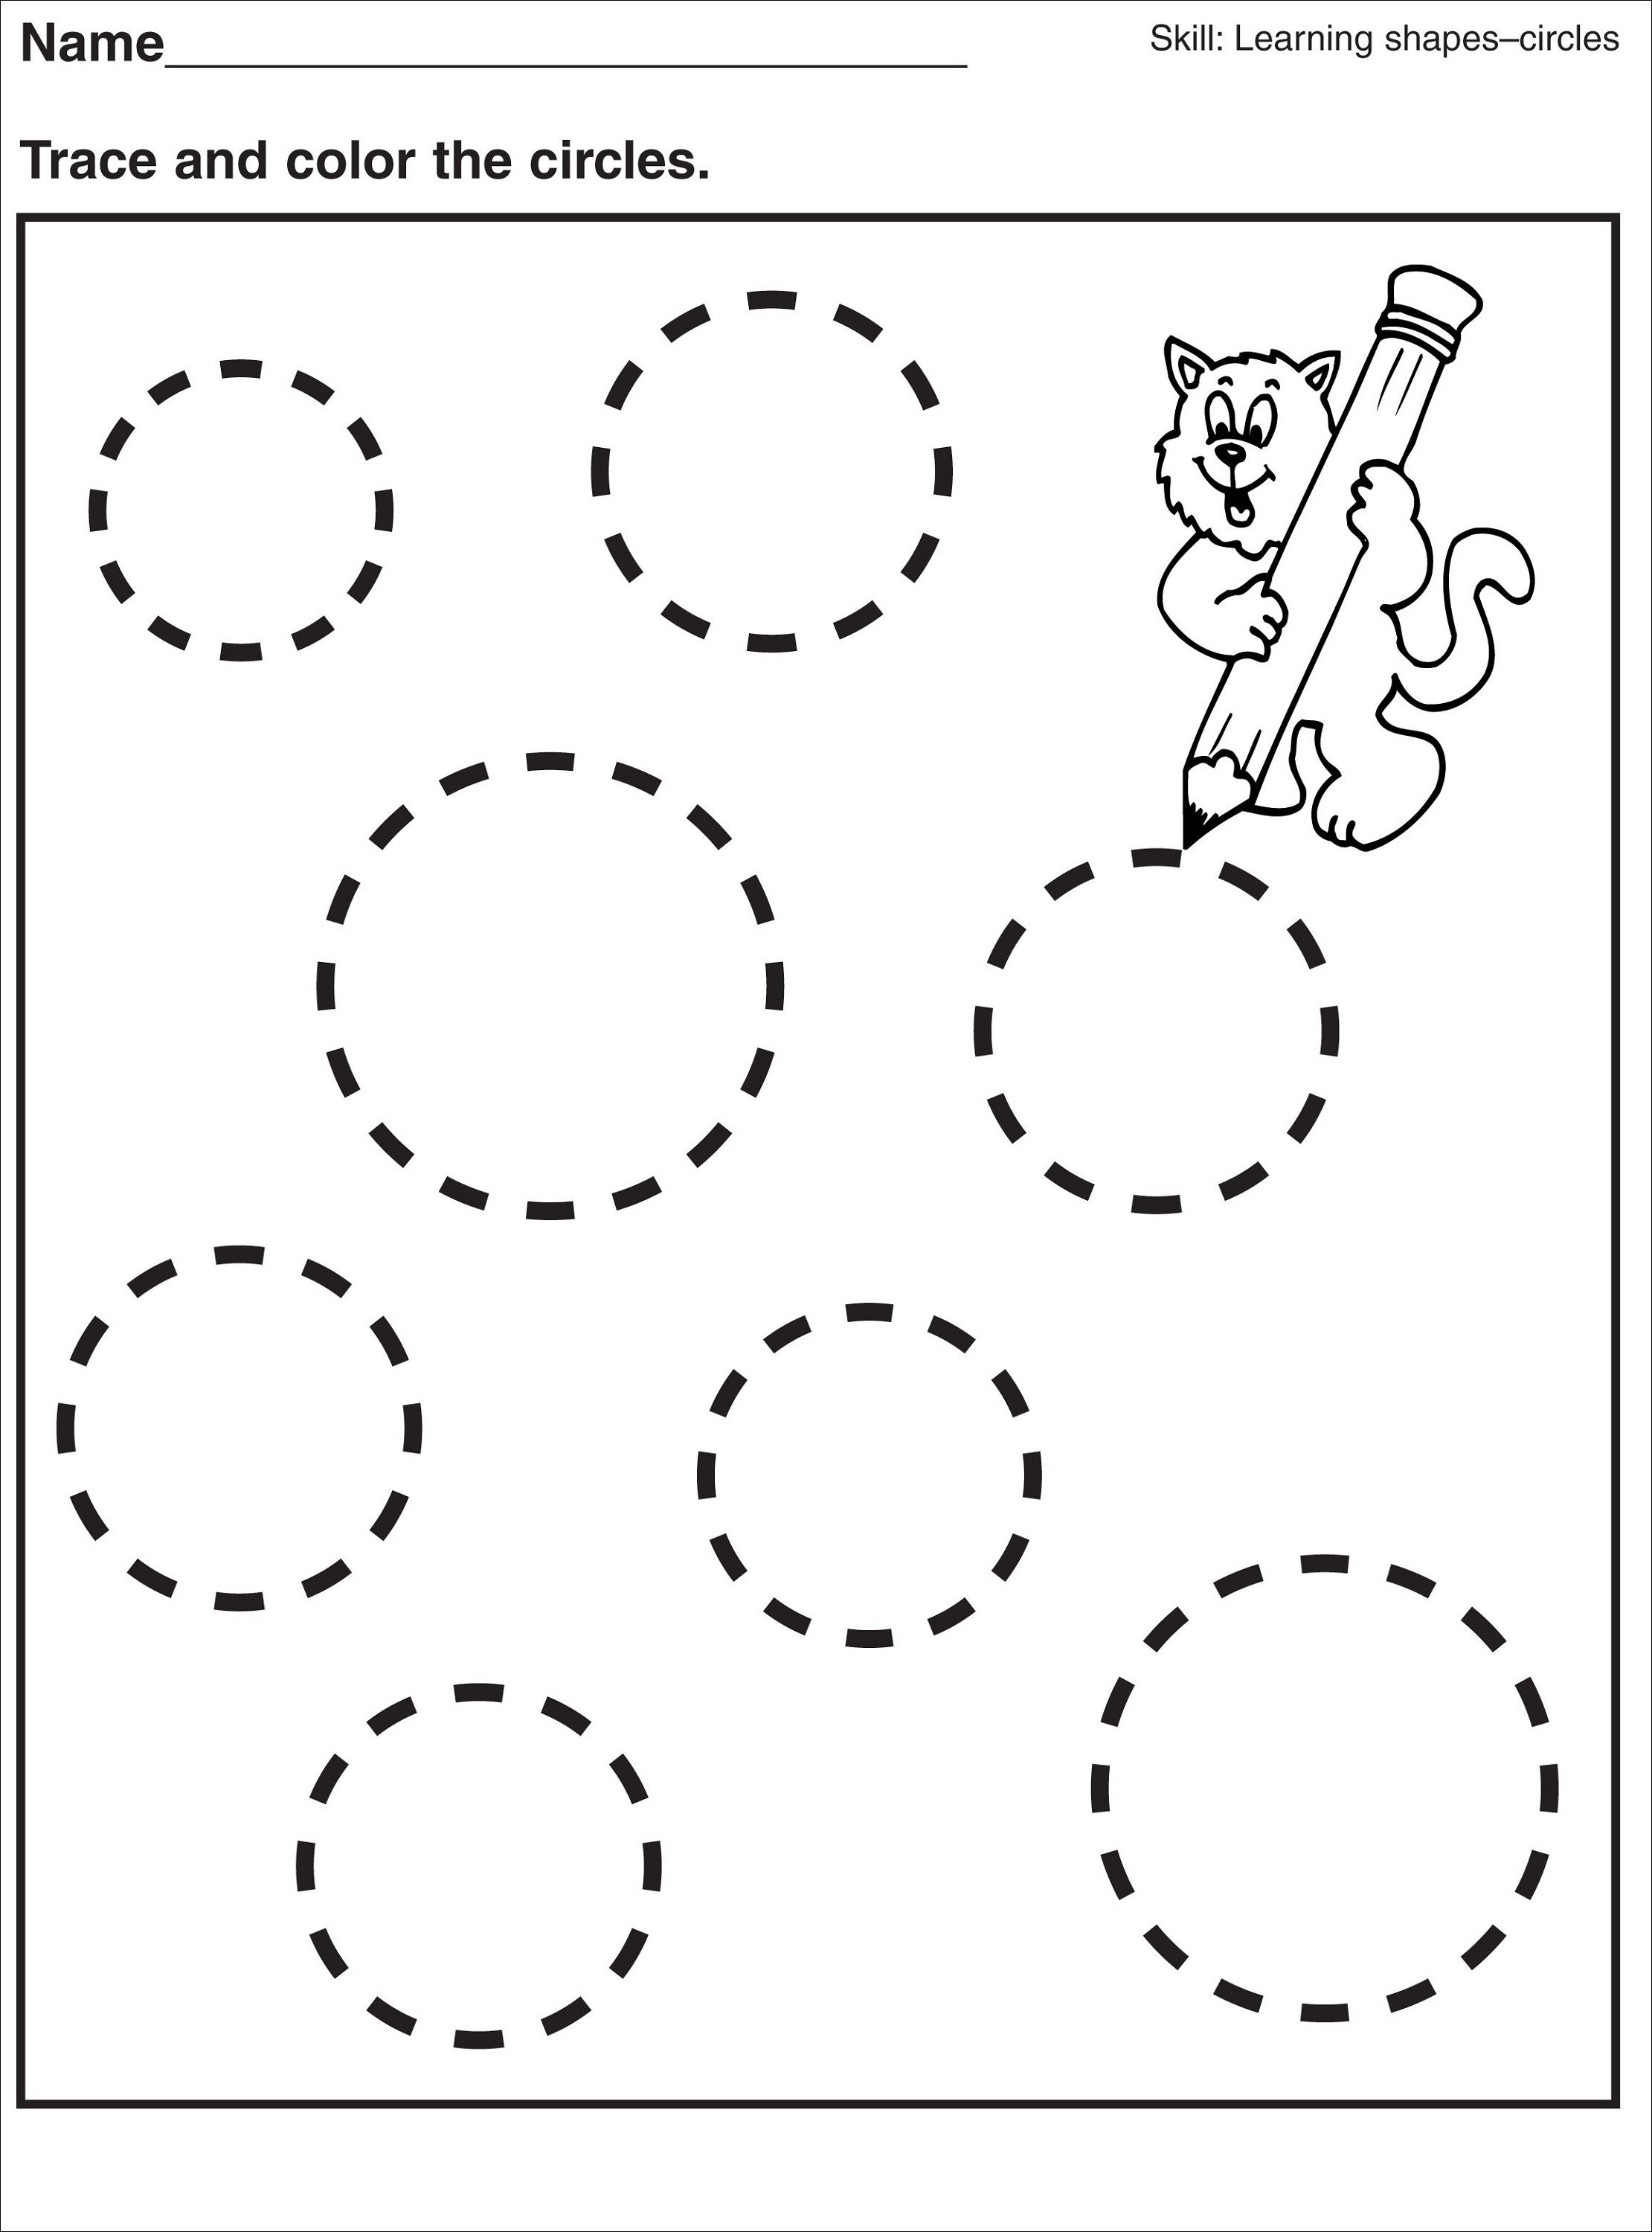 Worksheet Circle Article